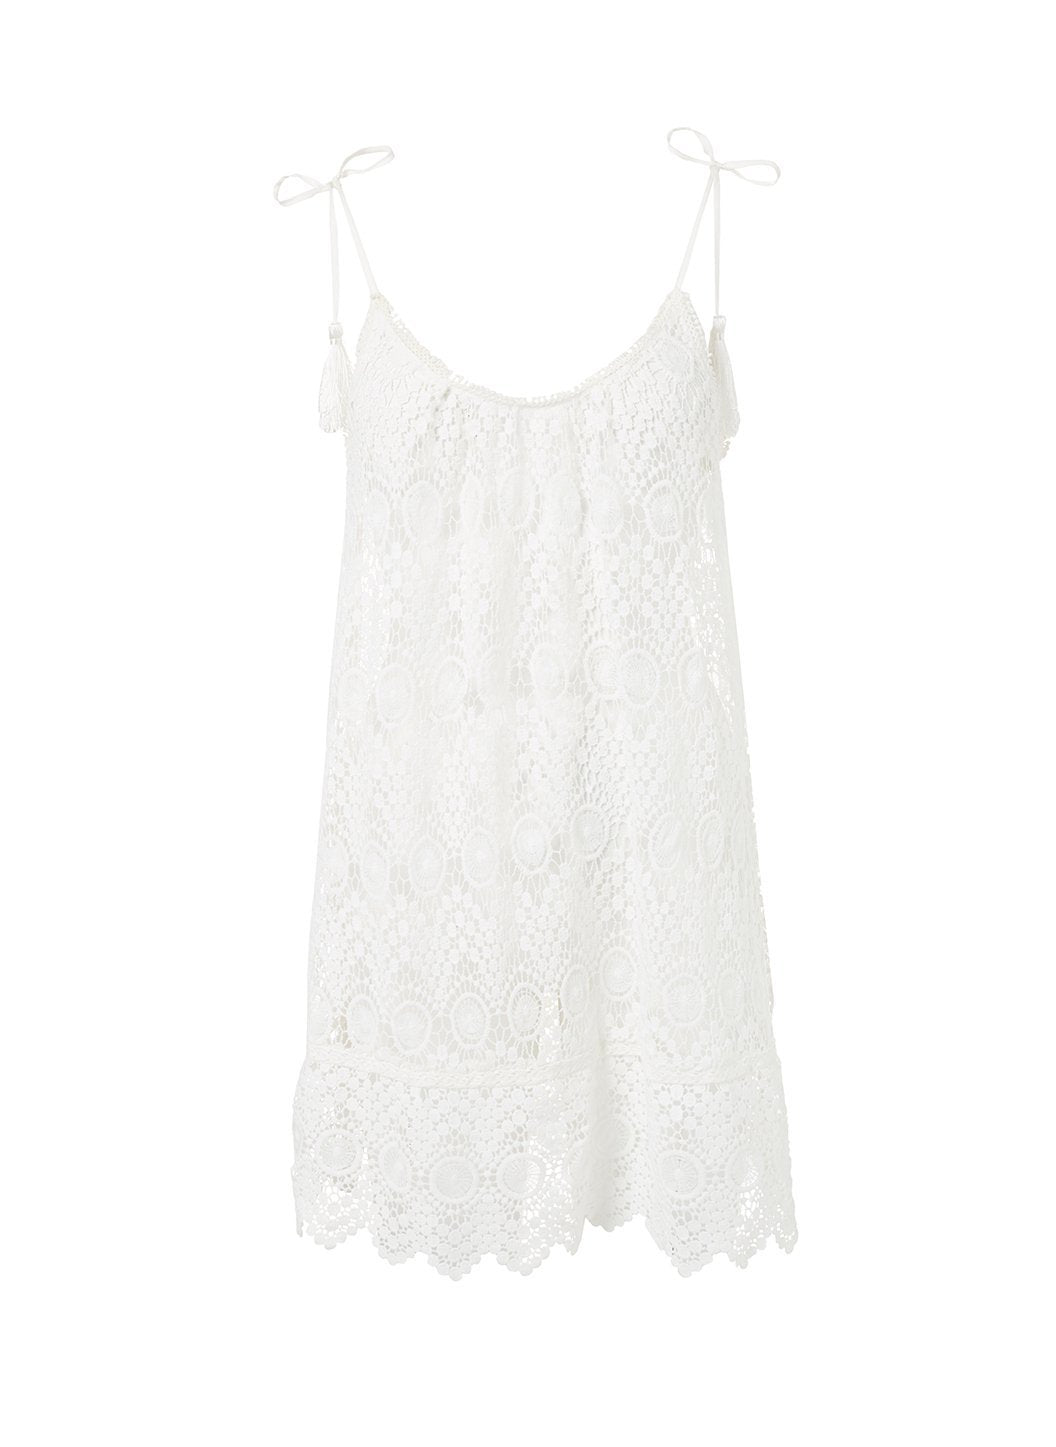 ana cream lace short tieshoulder beach dress 2019